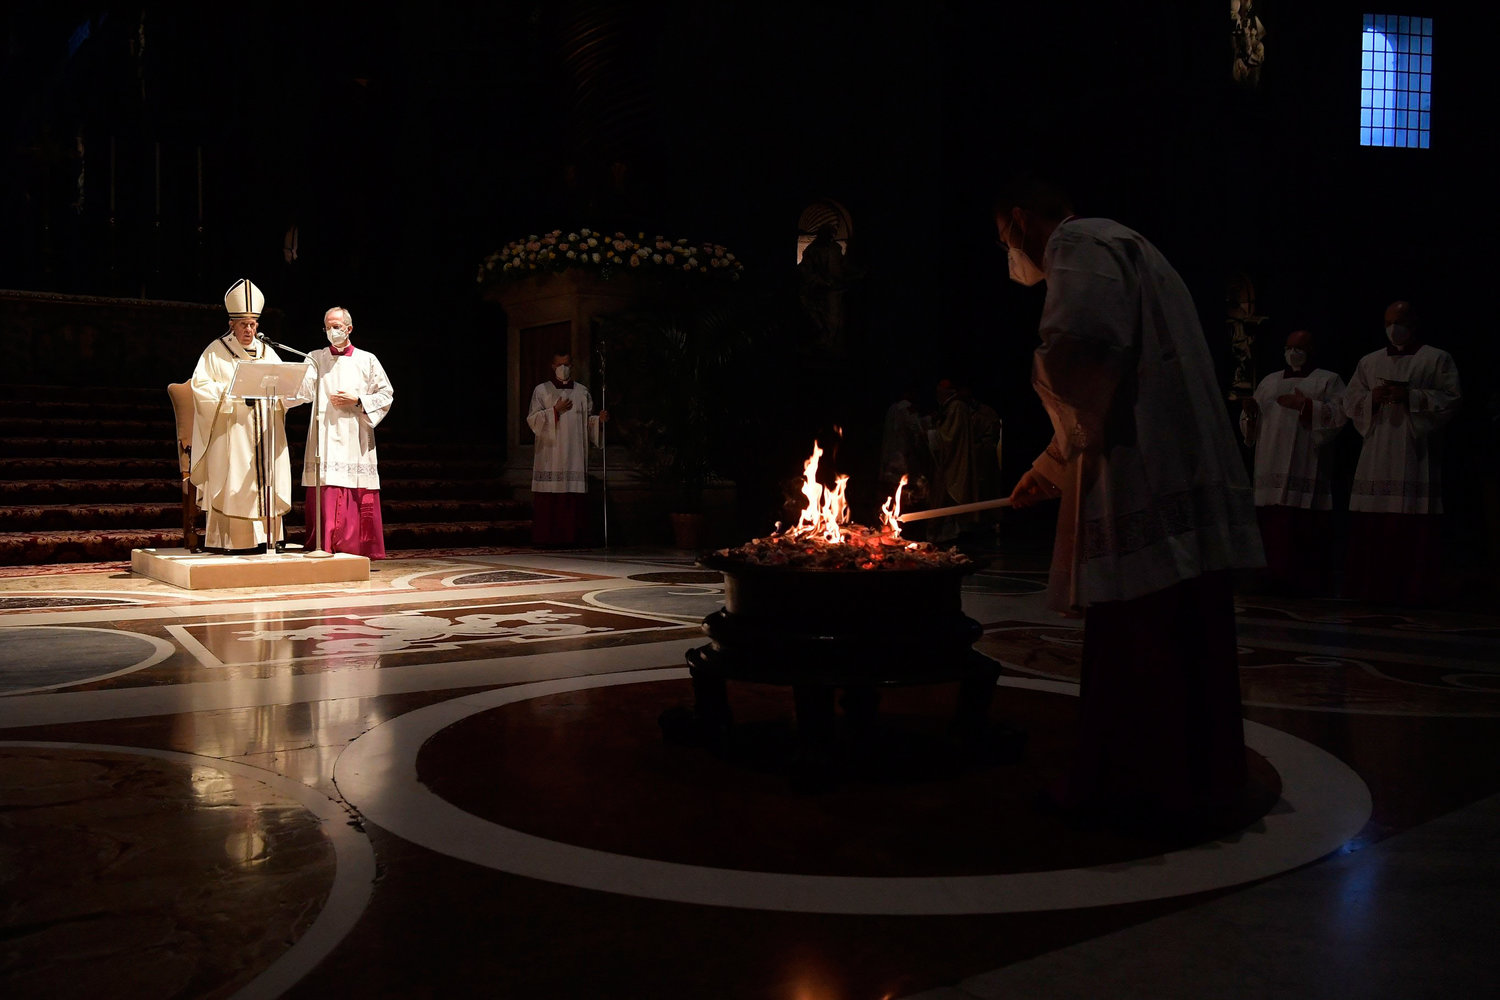 Pope Francis celebrates the Easter Vigil in St. Peter's Basilica at the Vatican April 3. The Easter Vigil was celebrated in a near empty basilica for the second year in a row as Italy continues to fight the Covid-19 pandemic.